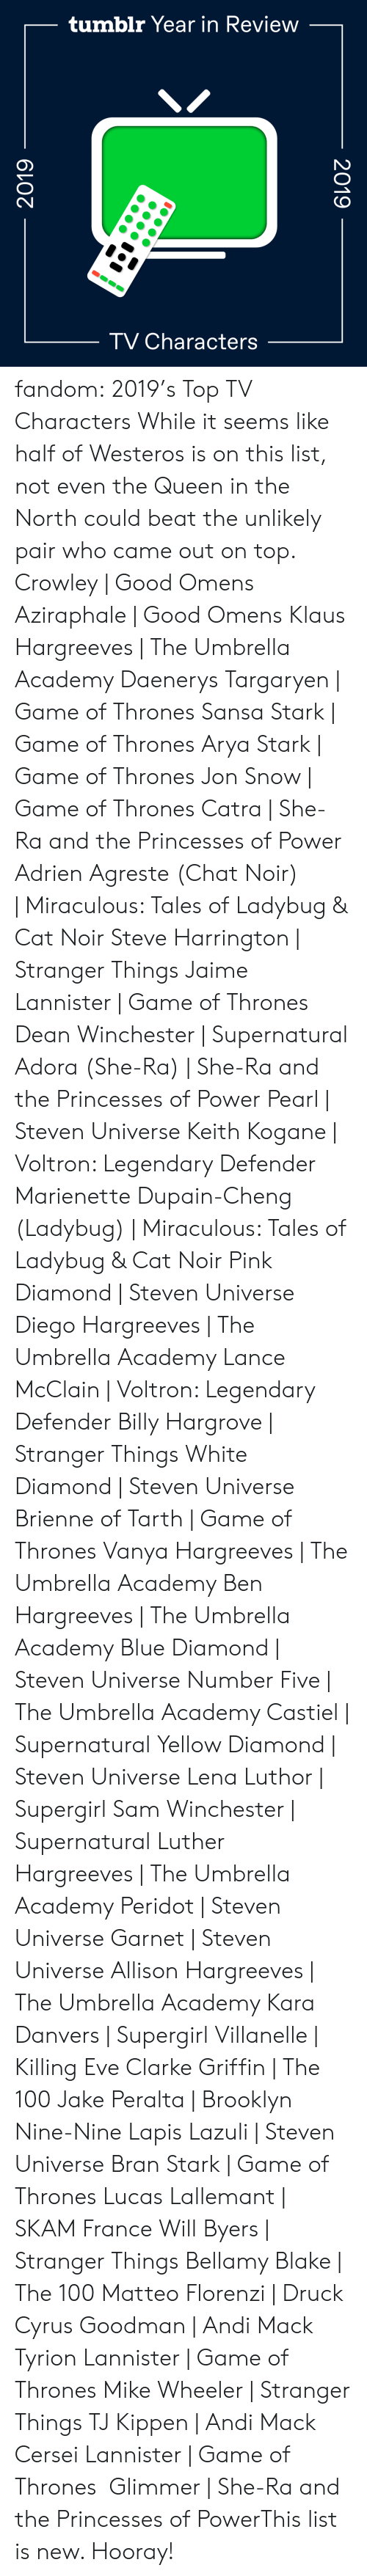 Diamond: tumblr Year in Review  TV Characters  2019  2019 fandom:  2019's Top TV Characters  While it seems like half of Westeros is on this list, not even the Queen in the North could beat the unlikely pair who came out on top.  Crowley | Good Omens  Aziraphale | Good Omens  Klaus Hargreeves | The Umbrella Academy  Daenerys Targaryen | Game of Thrones  Sansa Stark | Game of Thrones  Arya Stark | Game of Thrones  Jon Snow | Game of Thrones  Catra | She-Ra and the Princesses of Power  Adrien Agreste (Chat Noir) | Miraculous: Tales of Ladybug & Cat Noir  Steve Harrington | Stranger Things  Jaime Lannister | Game of Thrones  Dean Winchester | Supernatural  Adora (She-Ra) | She-Ra and the Princesses of Power  Pearl | Steven Universe  Keith Kogane | Voltron: Legendary Defender  Marienette Dupain-Cheng (Ladybug) | Miraculous: Tales of Ladybug & Cat Noir  Pink Diamond | Steven Universe  Diego Hargreeves | The Umbrella Academy  Lance McClain | Voltron: Legendary Defender  Billy Hargrove | Stranger Things  White Diamond | Steven Universe  Brienne of Tarth | Game of Thrones  Vanya Hargreeves | The Umbrella Academy  Ben Hargreeves | The Umbrella Academy  Blue Diamond | Steven Universe  Number Five | The Umbrella Academy  Castiel | Supernatural  Yellow Diamond | Steven Universe  Lena Luthor | Supergirl  Sam Winchester | Supernatural  Luther Hargreeves | The Umbrella Academy  Peridot | Steven Universe  Garnet | Steven Universe  Allison Hargreeves | The Umbrella Academy  Kara Danvers | Supergirl  Villanelle | Killing Eve  Clarke Griffin | The 100  Jake Peralta | Brooklyn Nine-Nine  Lapis Lazuli | Steven Universe  Bran Stark | Game of Thrones  Lucas Lallemant | SKAM France  Will Byers | Stranger Things  Bellamy Blake | The 100  Matteo Florenzi | Druck  Cyrus Goodman | Andi Mack  Tyrion Lannister | Game of Thrones  Mike Wheeler | Stranger Things  TJ Kippen | Andi Mack  Cersei Lannister | Game of Thrones  Glimmer | She-Ra and the Princesses of PowerThis list is new. Hooray!